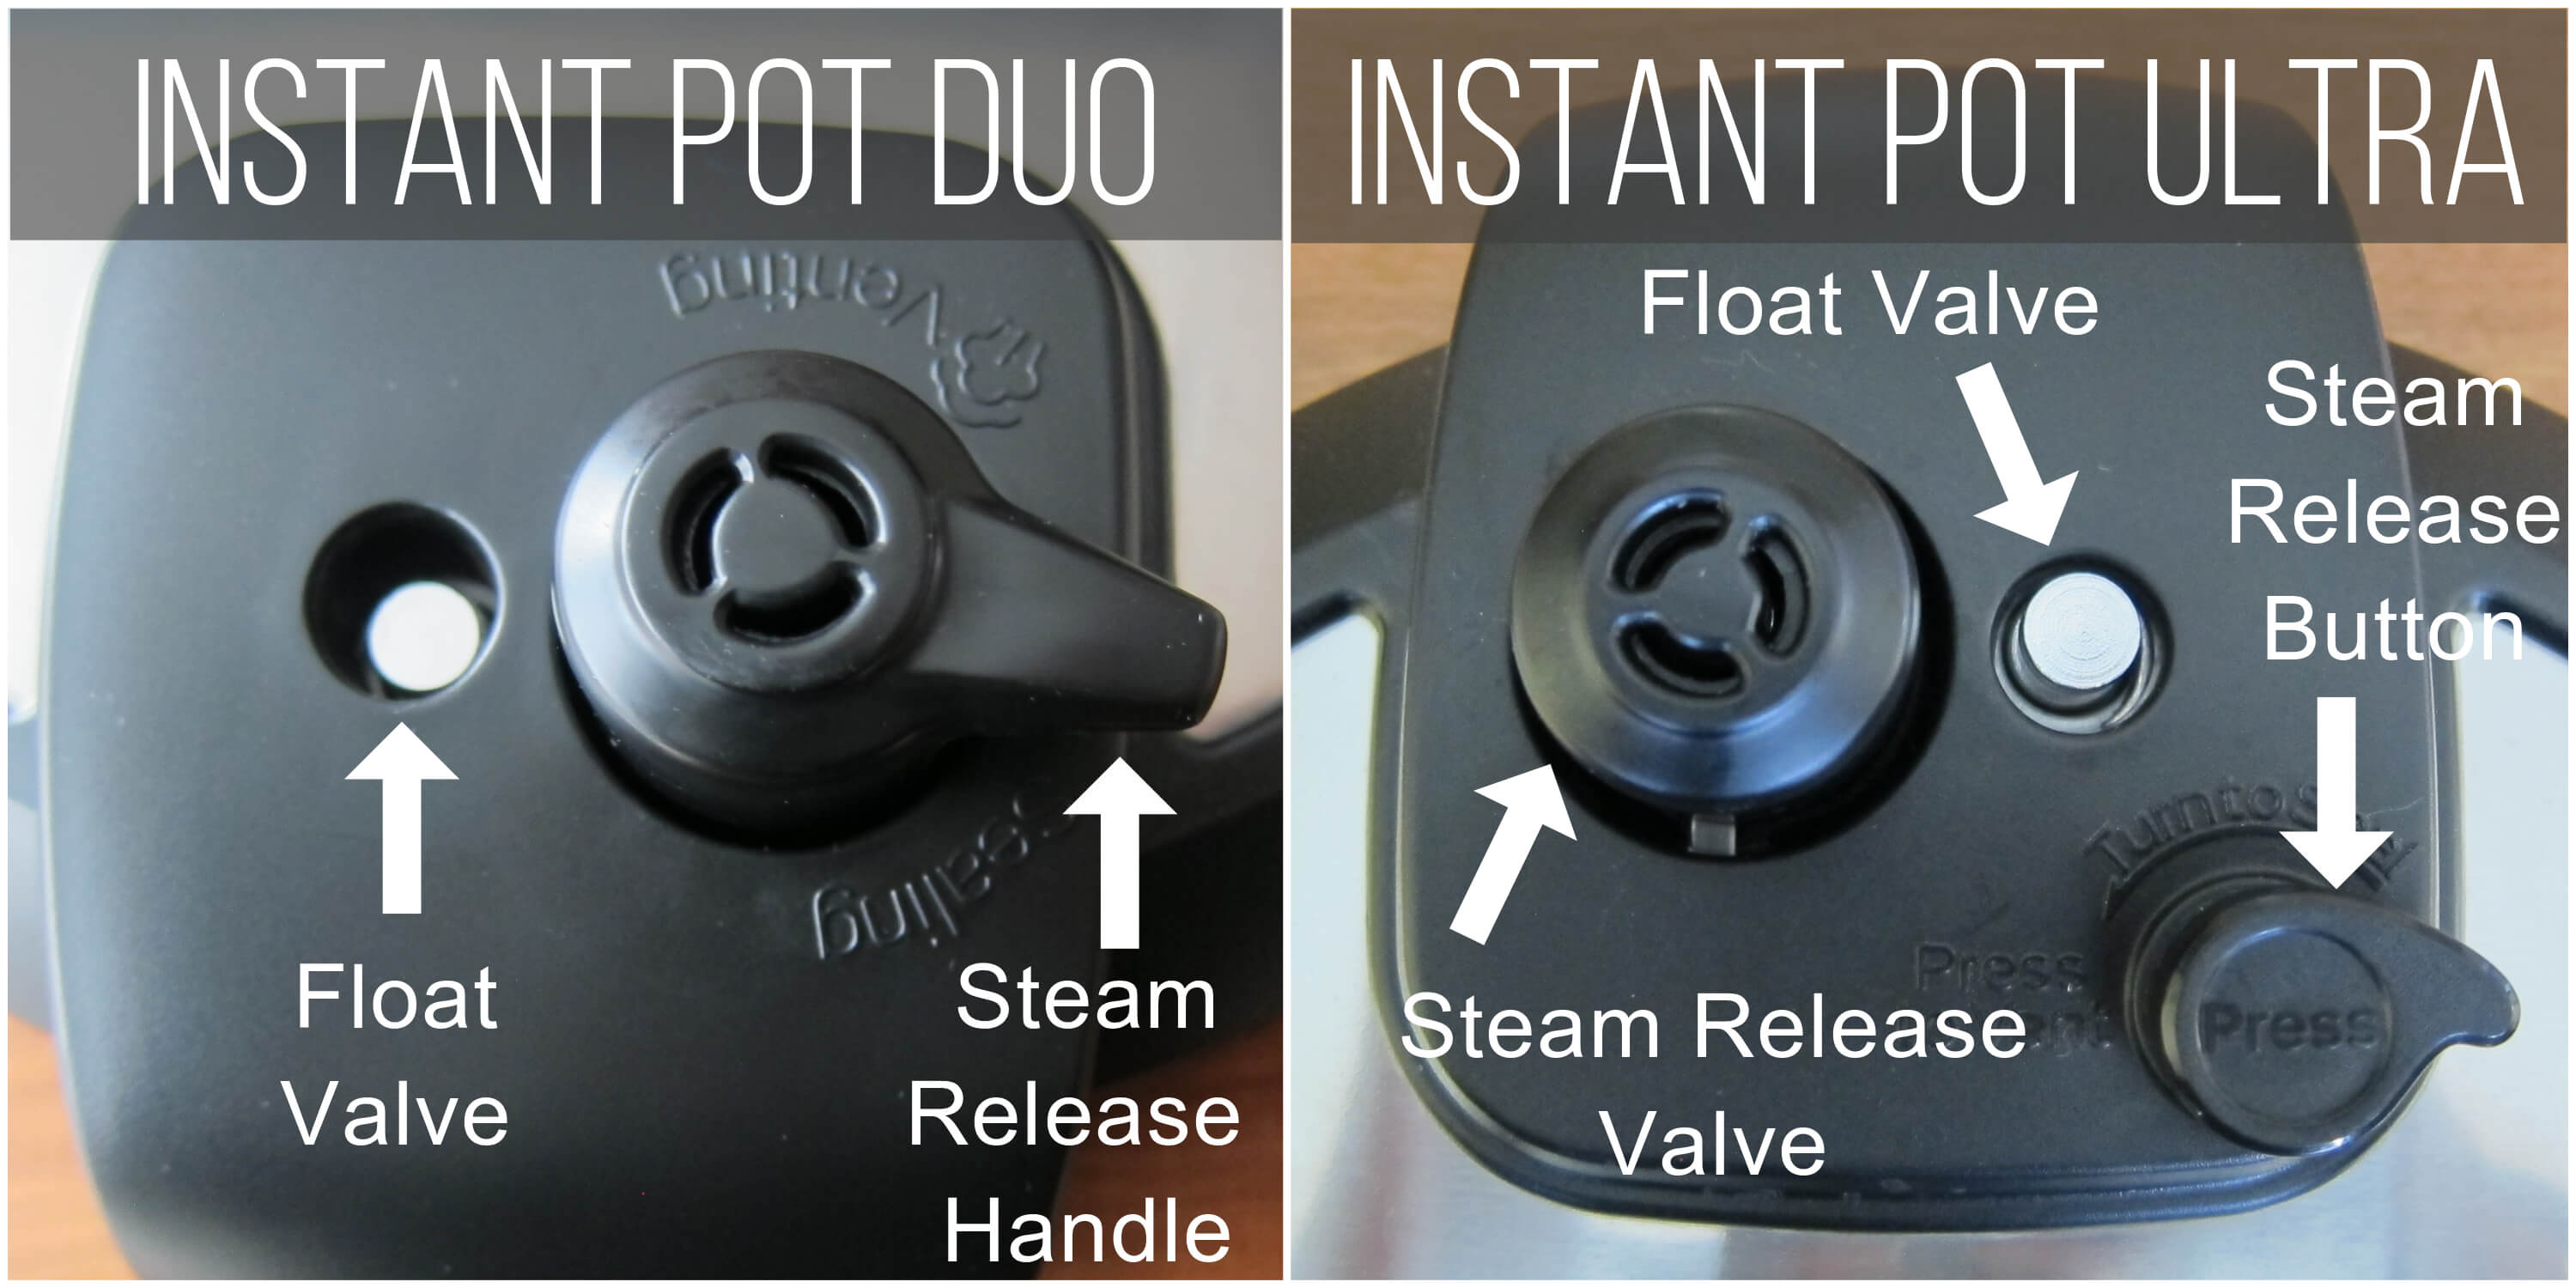 Instant Pot Problems - Duo: arrows pointing to float valve and steam release handle, Ultra: arrows pointing to steam release handle, float valve, steam release button - Paint the Kitchen Red